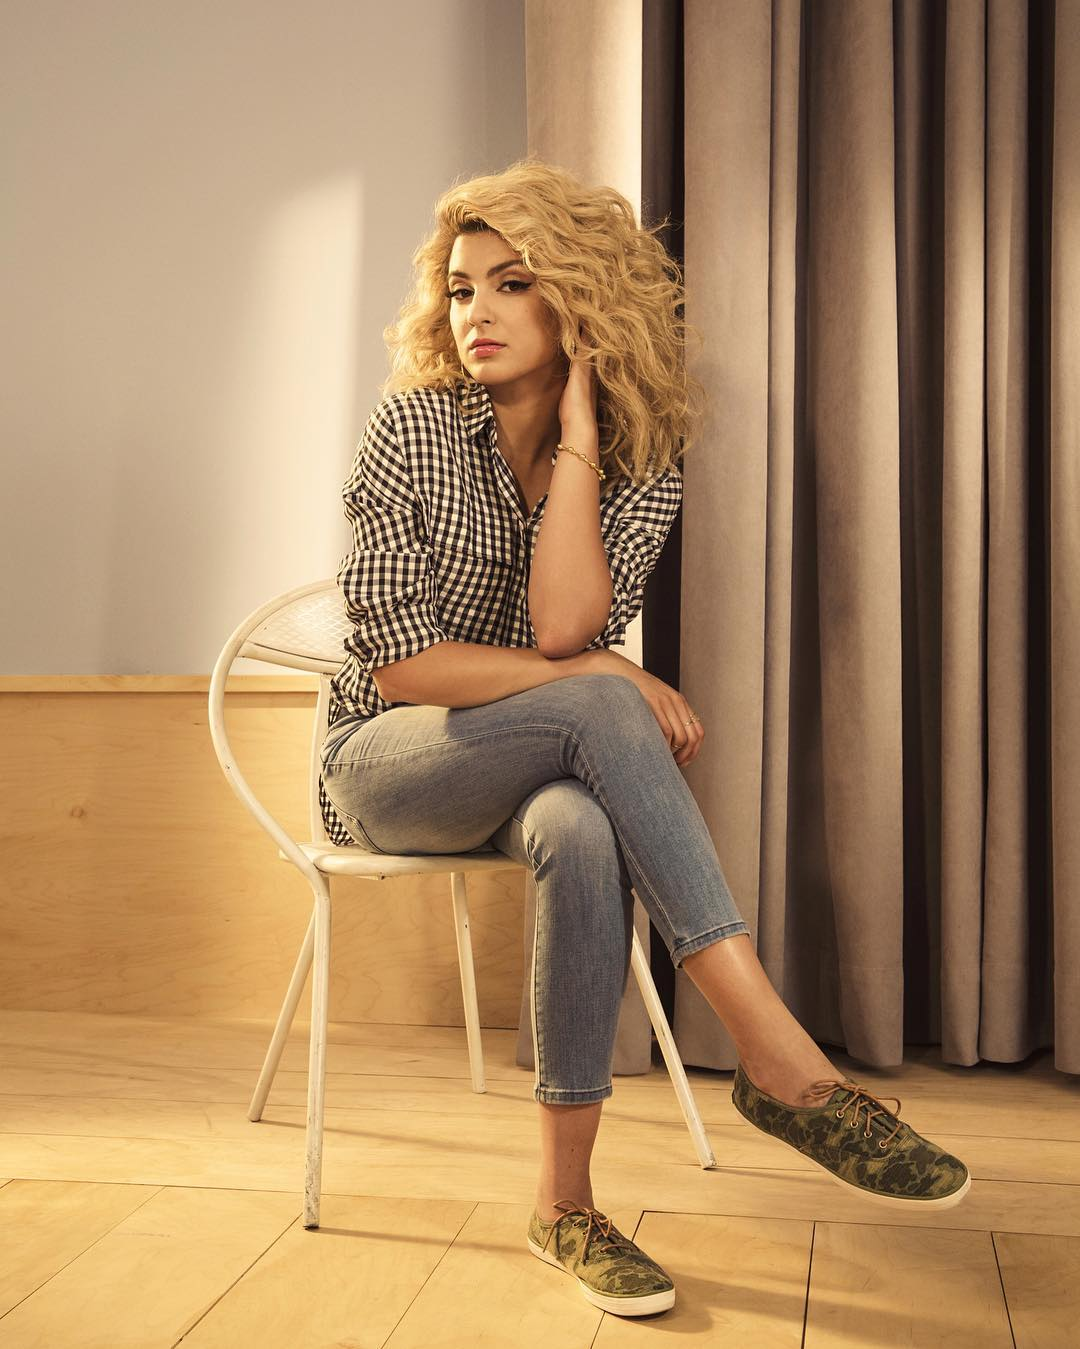 Tori Kelly Instagram username